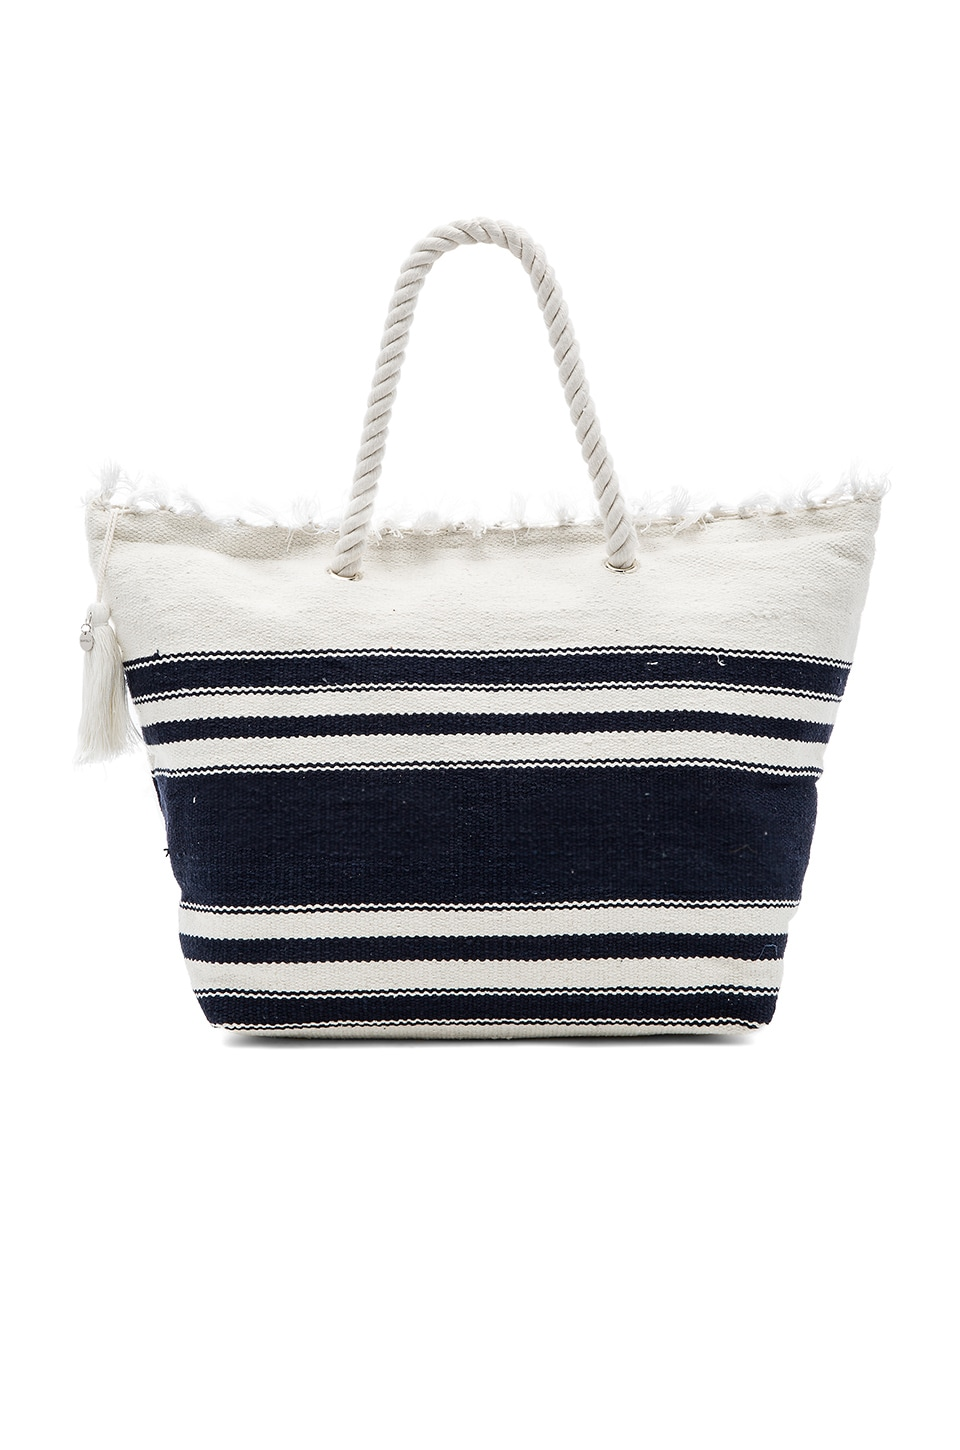 Cute striped tote